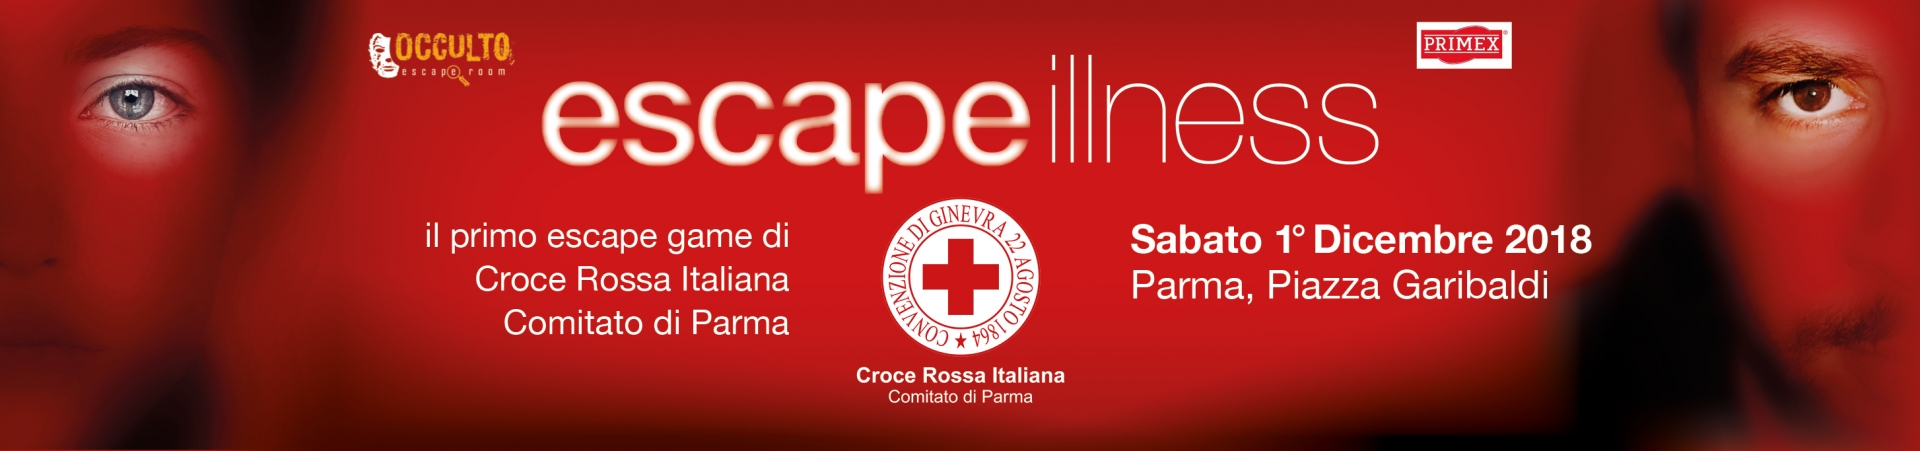 Escape Illness! Il primo Escape Game di Croce Rossa